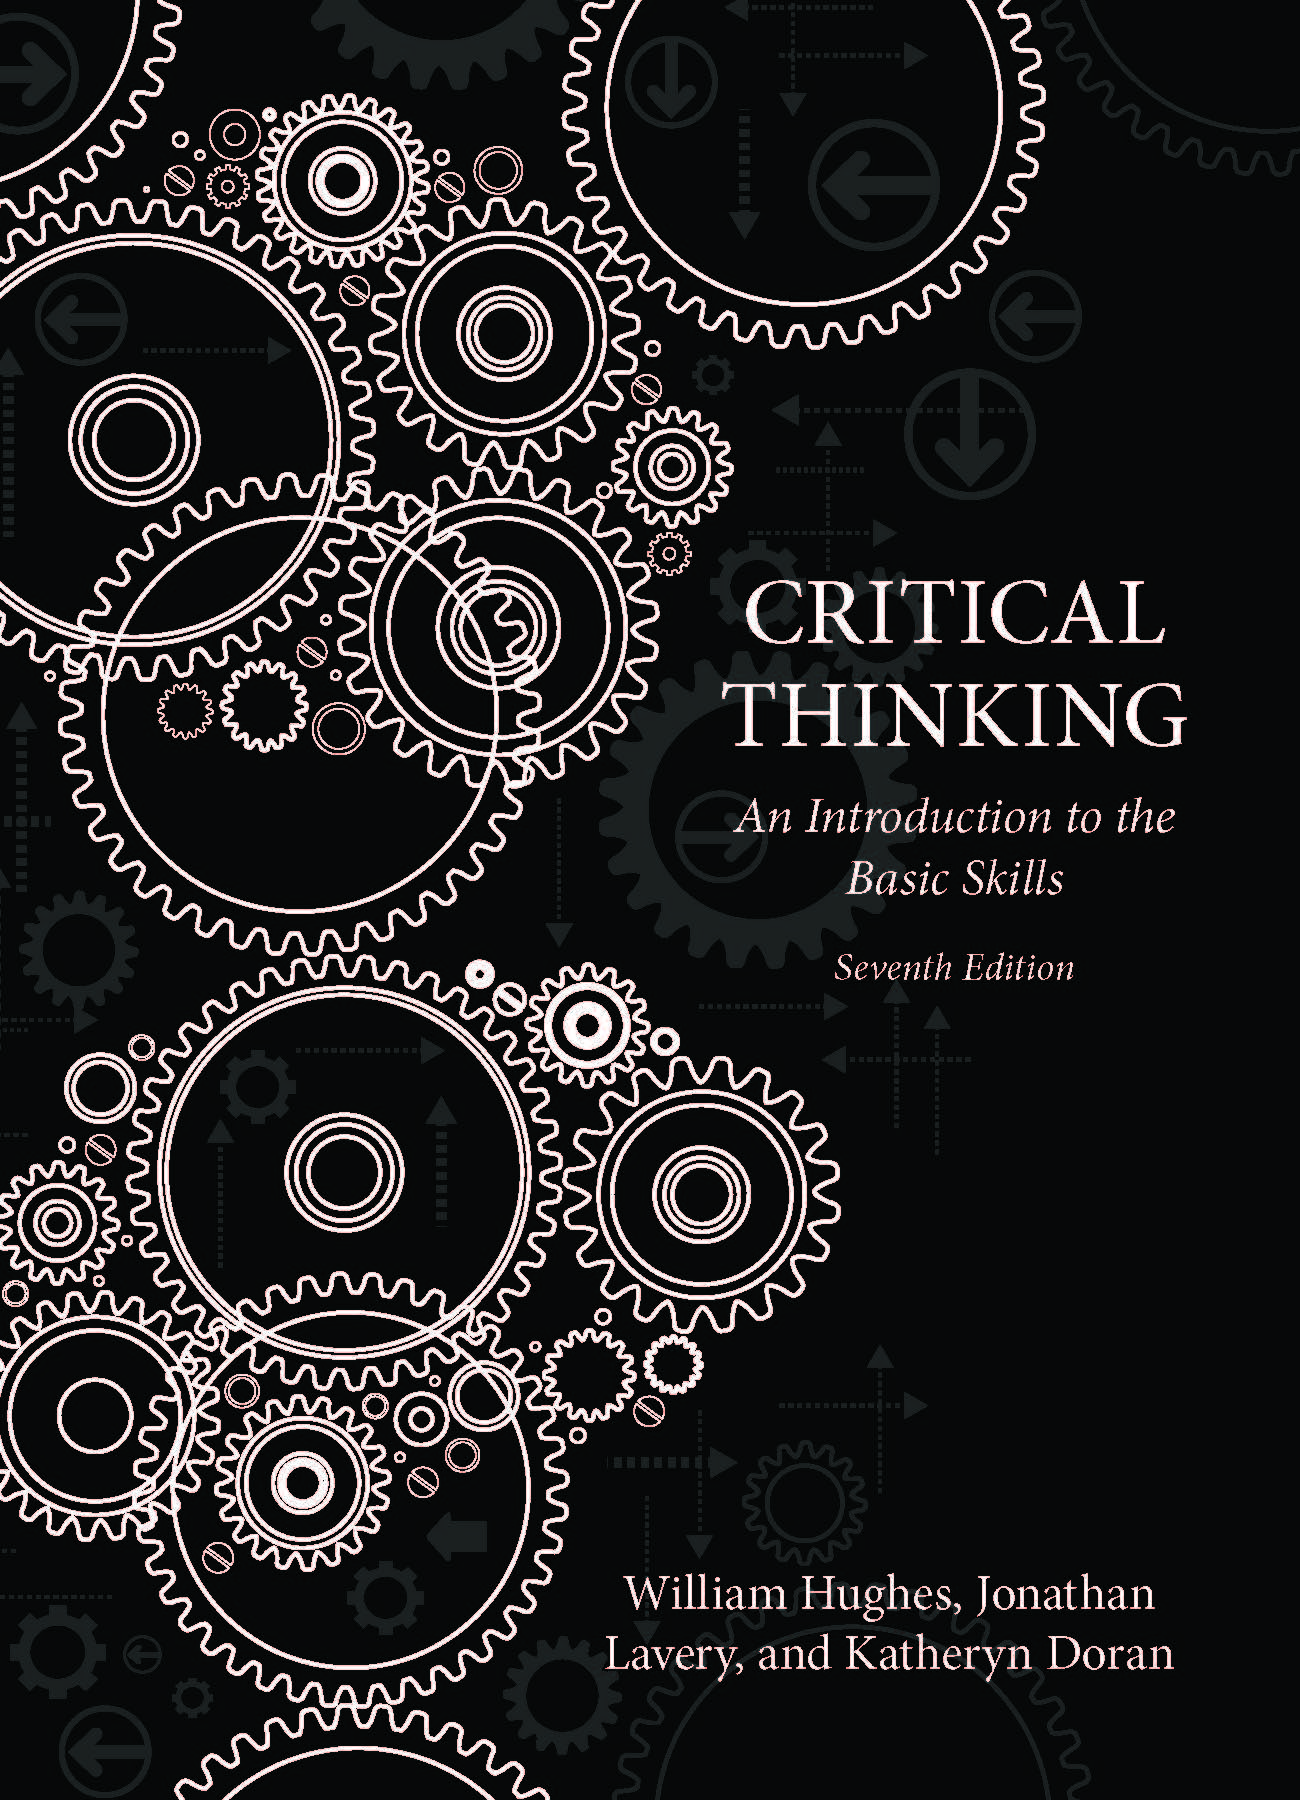 Critical Thinking Course Definition